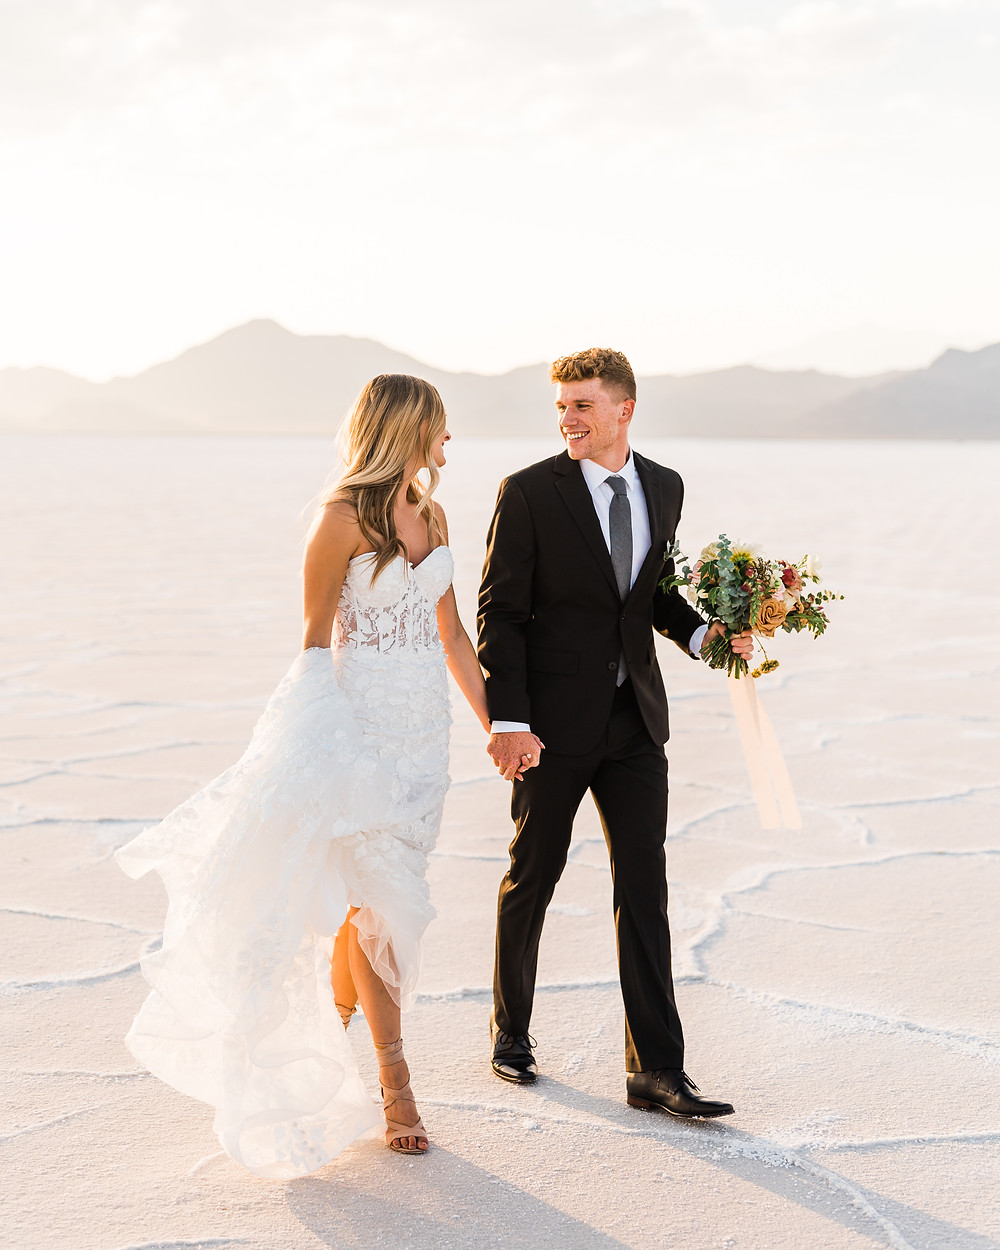 A man and woman in wedding attire are walking and laughing while looking at each other, the man is holding a bouquet